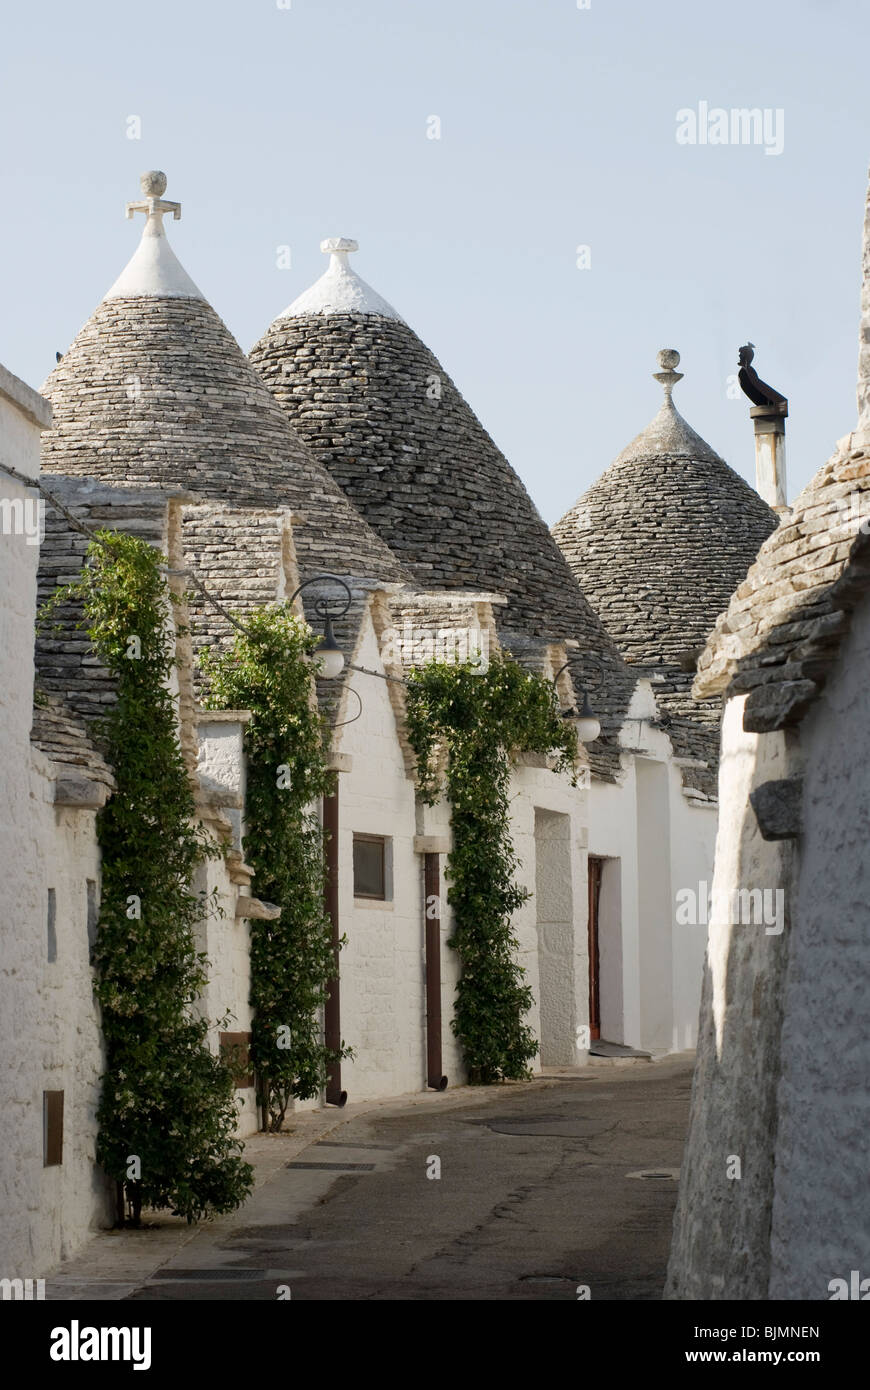 italien apulien alberobello unesco weltkulturerbe trulli italien apulien alberobello. Black Bedroom Furniture Sets. Home Design Ideas